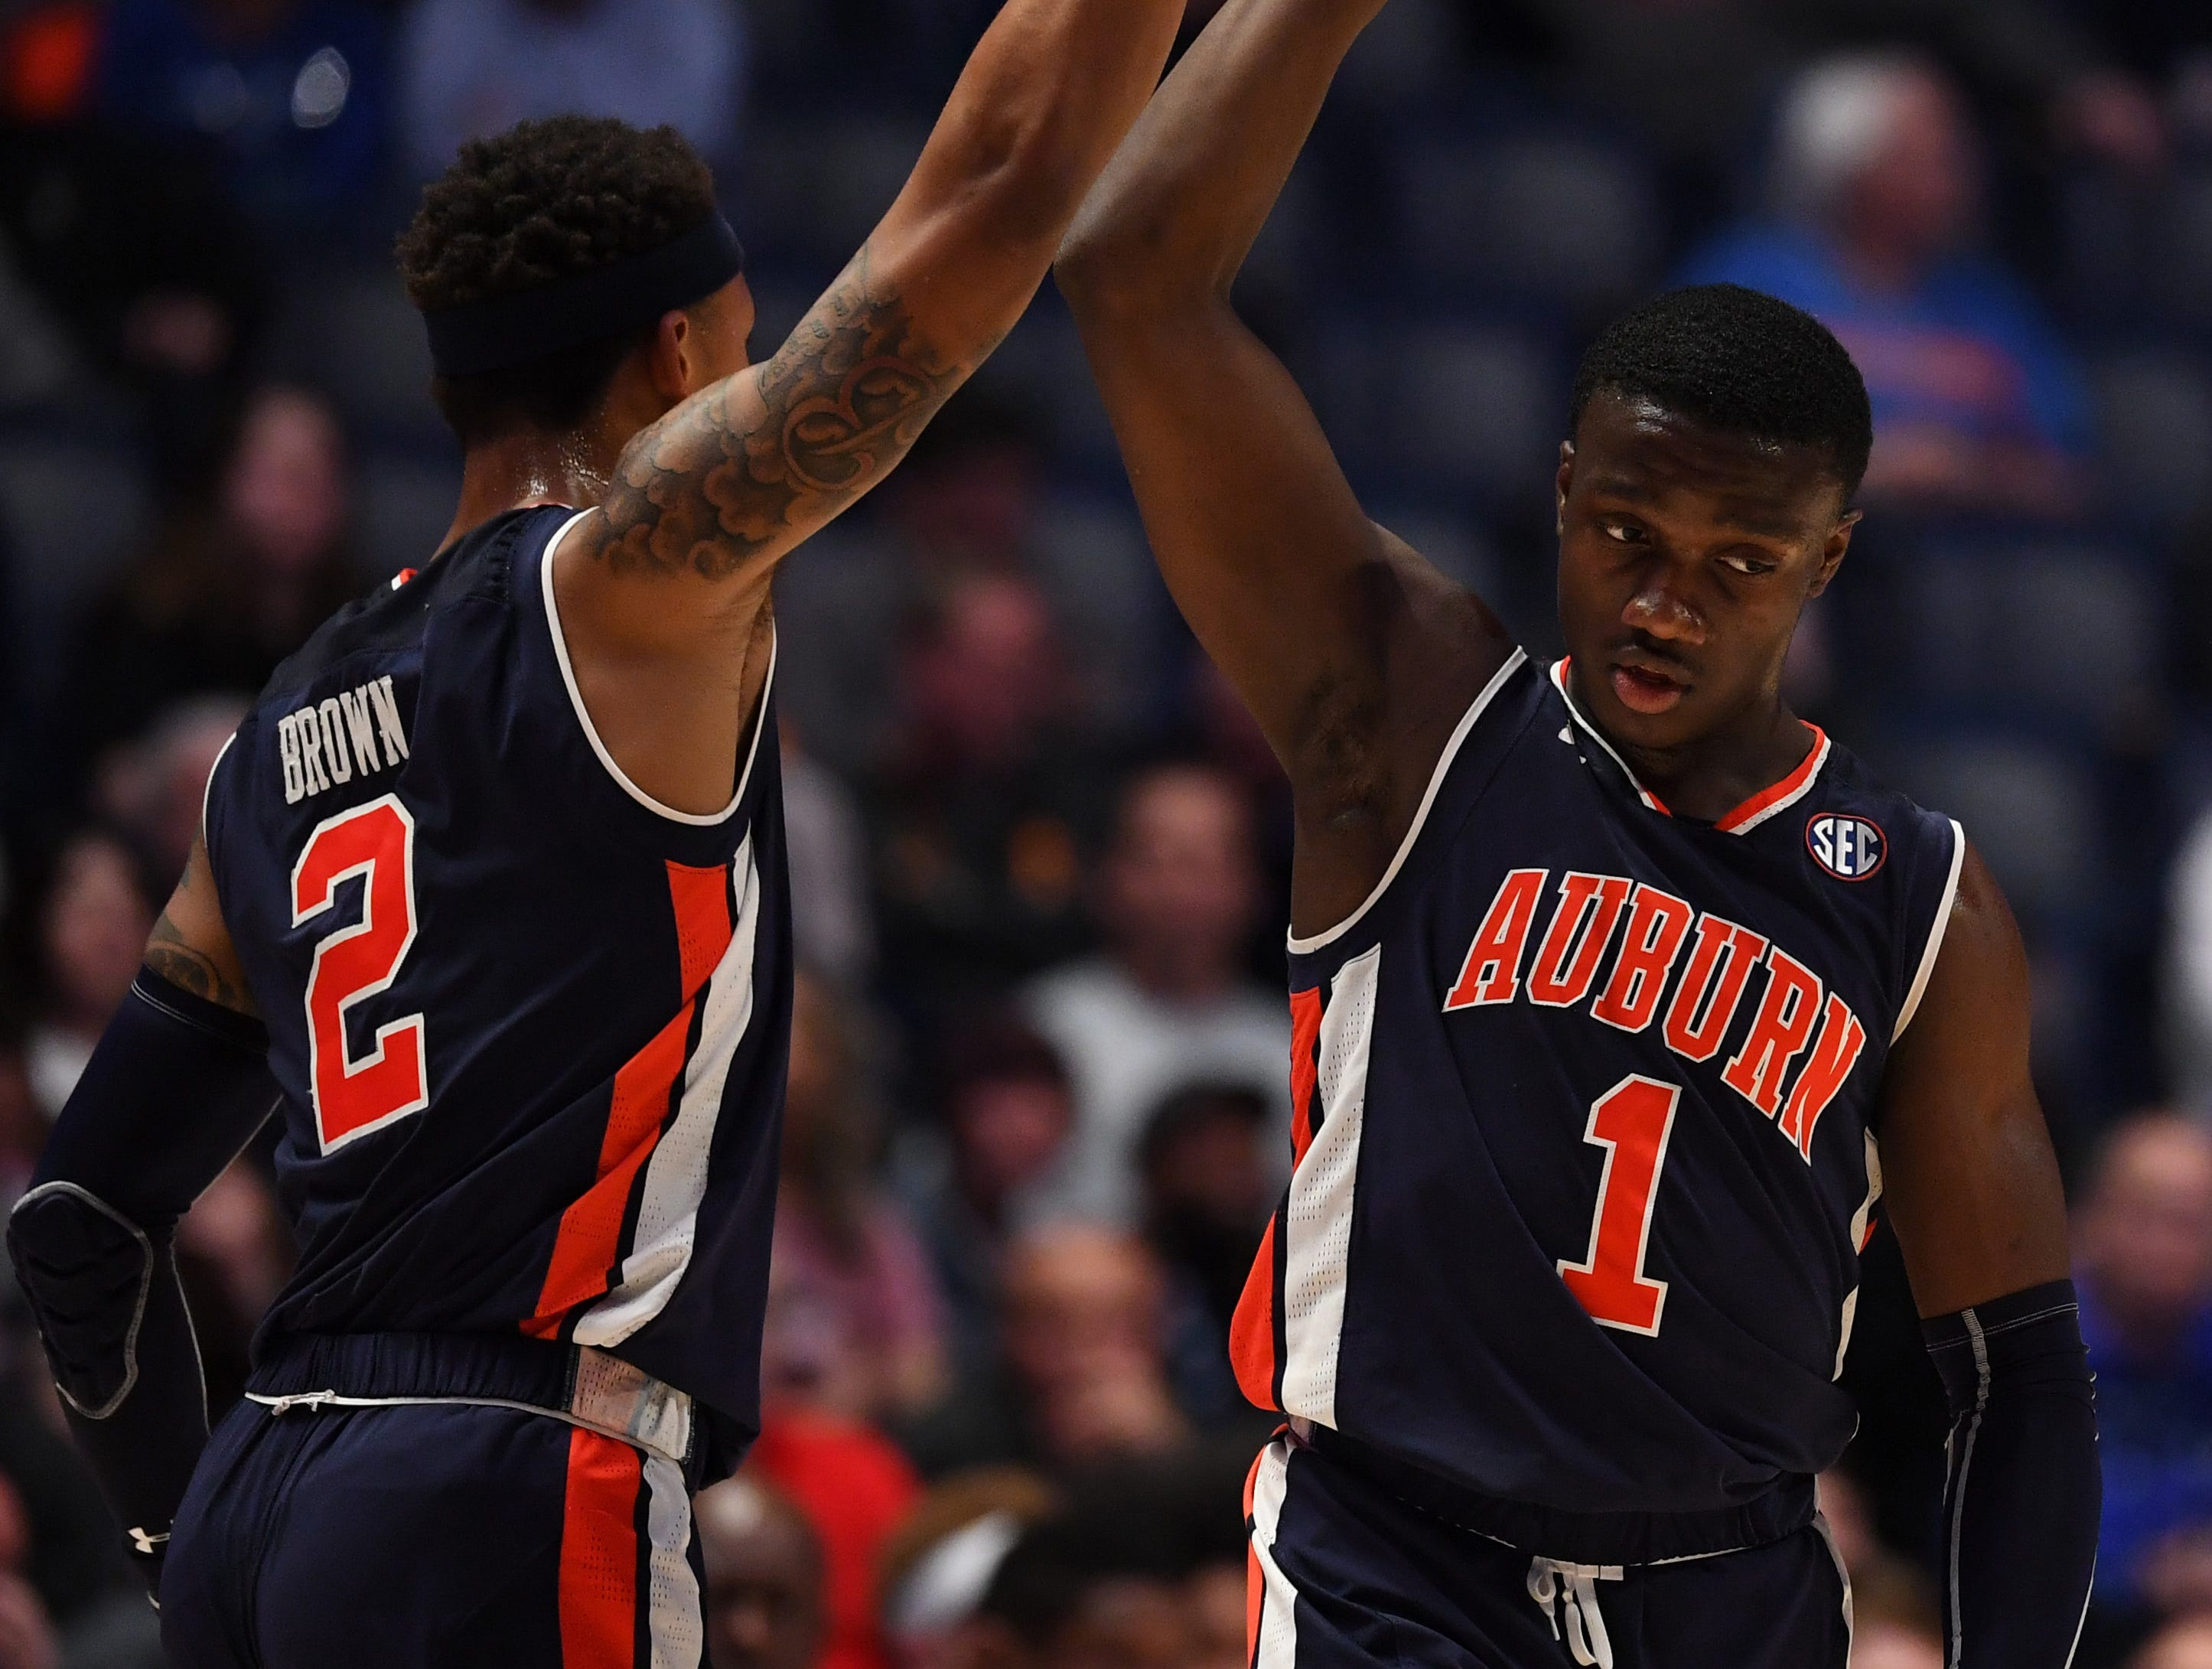 Mar 15, 2019; Nashville, TN, USA; Auburn Tigers guard Jared Harper (1) and Tigers guard Bryce Brown (2) celebrate after a basket against the South Carolina Gamecocks during the first half of the SEC conference tournament at Bridgestone Arena. Mandatory Credit: Christopher Hanewinckel-USA TODAY Sports